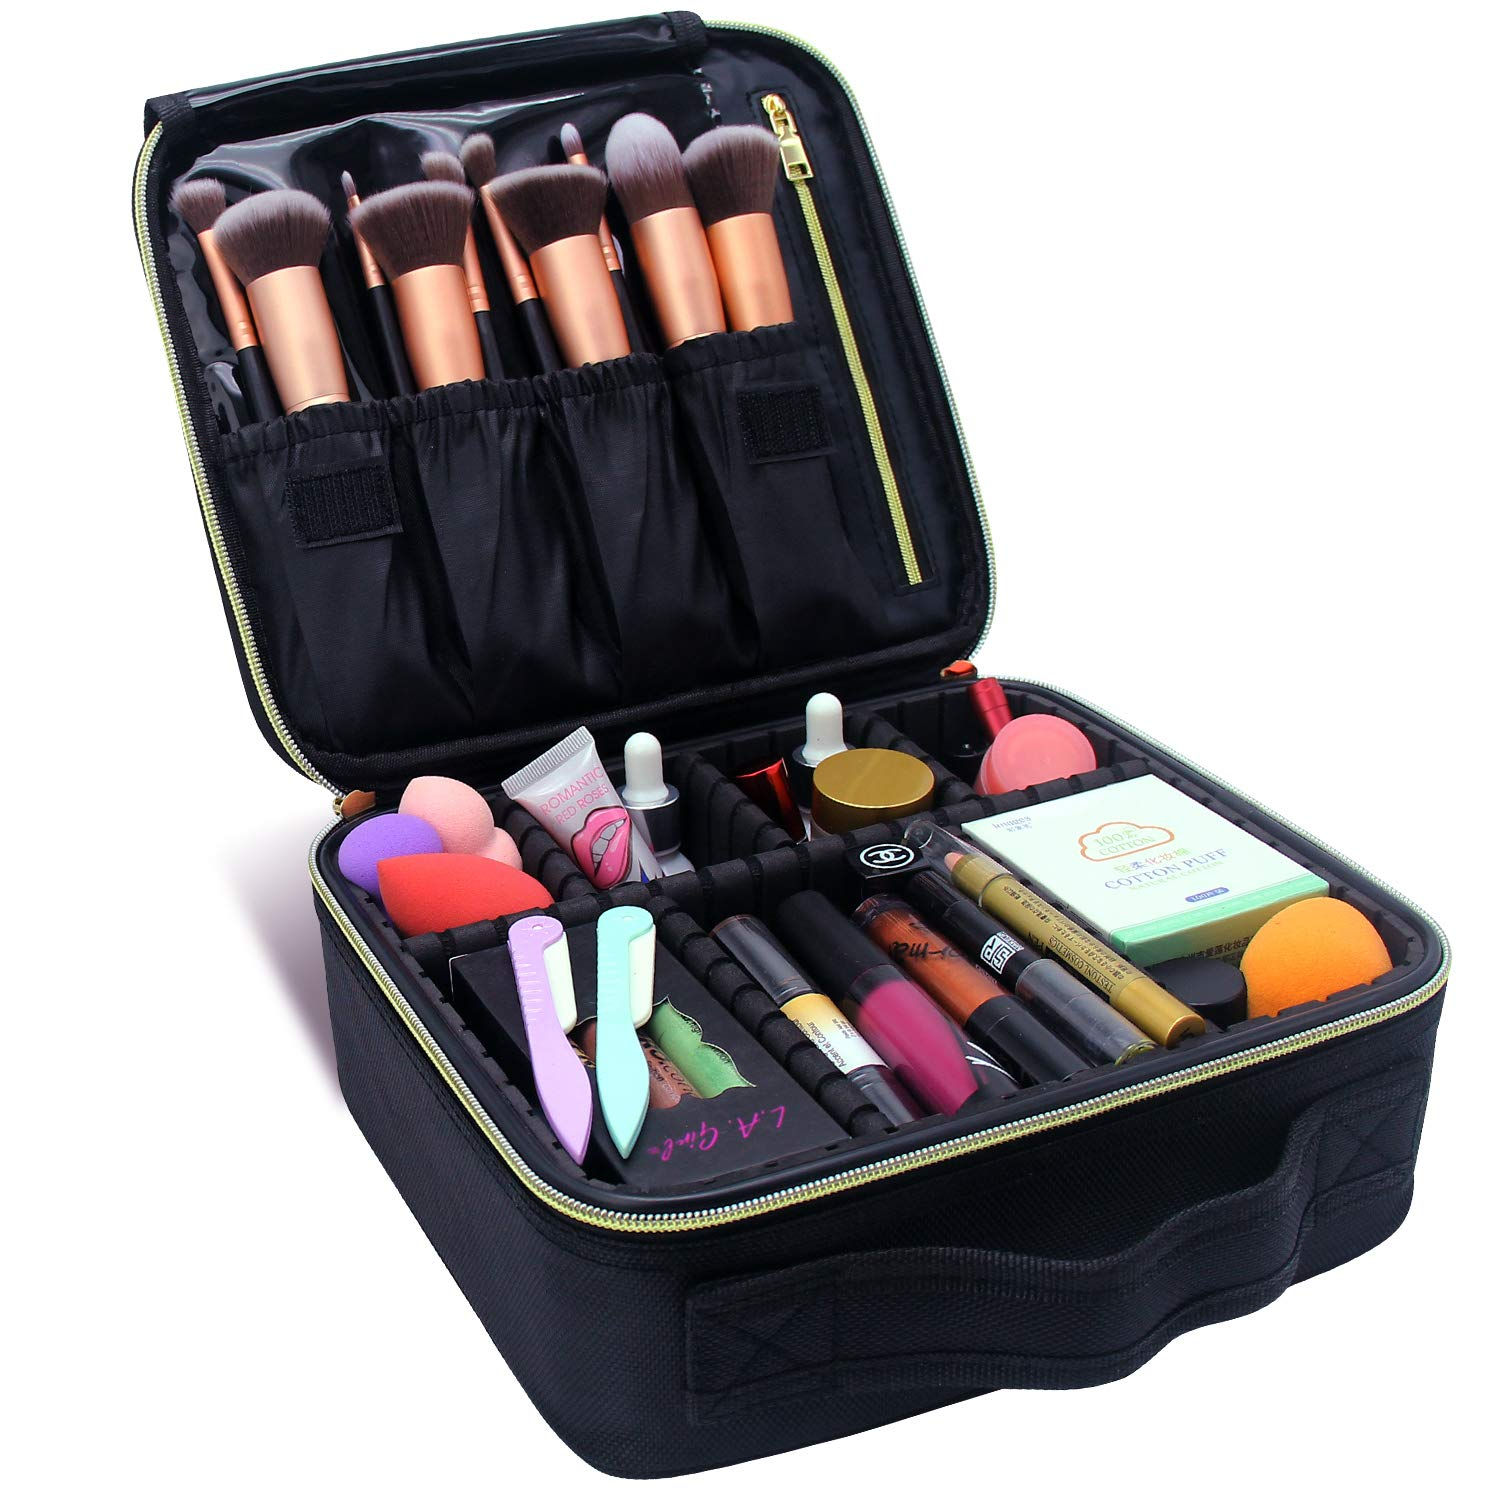 Makeup Train Cases Professional Travel Makeup Bag Cosmetic Cases Organizer Portable Storage Bag for Cosmetics Makeup Brushes Toiletry Travel Accessories (S-Black)